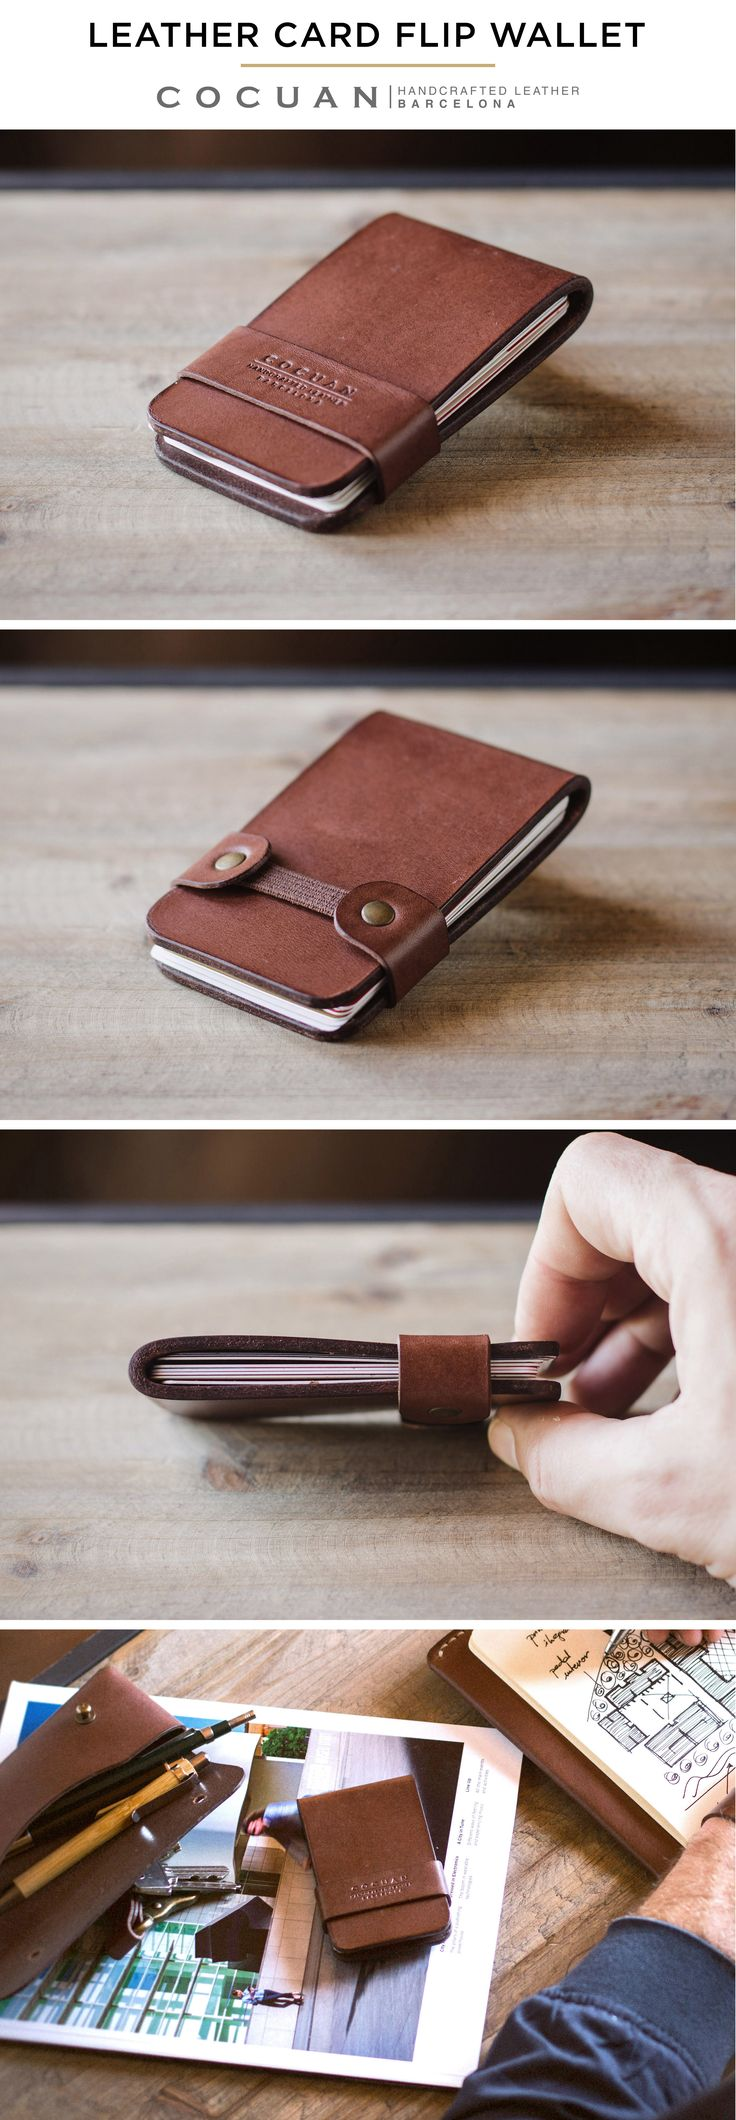 LEATHER CARD FLIP WALLET www.cocuan.com